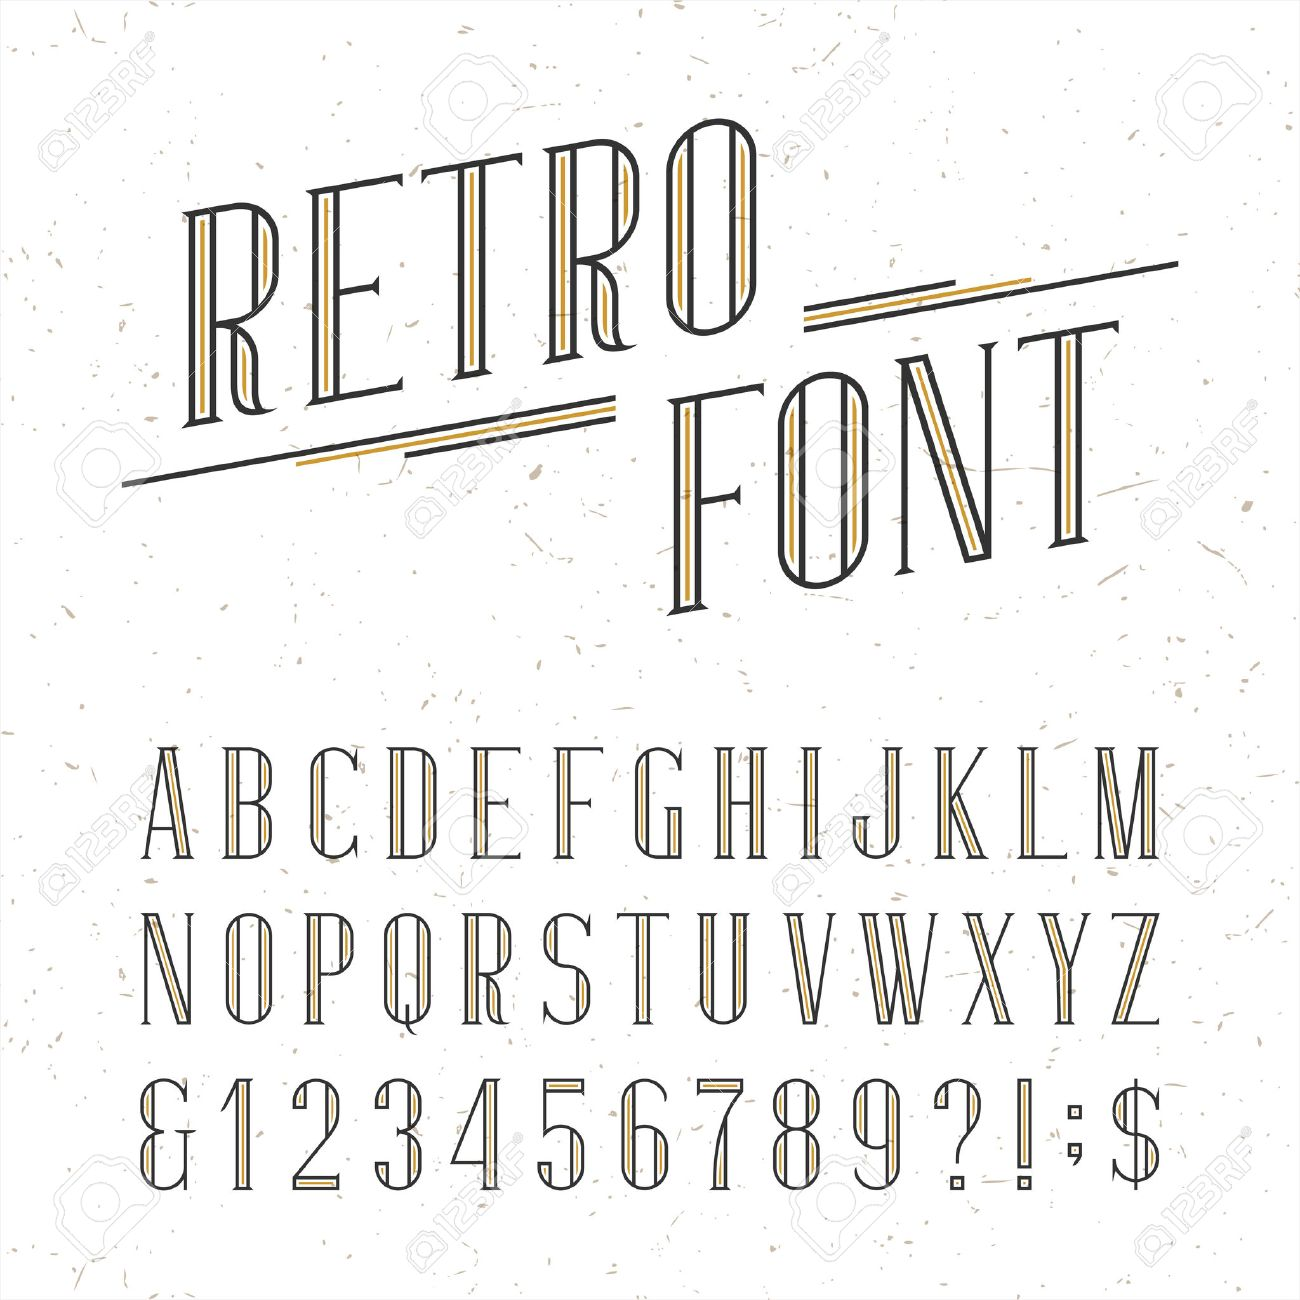 Decorative retro alphabet vector font. Serif type letters, numbers and symbols on the white background with distressed overlay texture. Stock vector typography for labels, headlines, posters etc. - 48071528